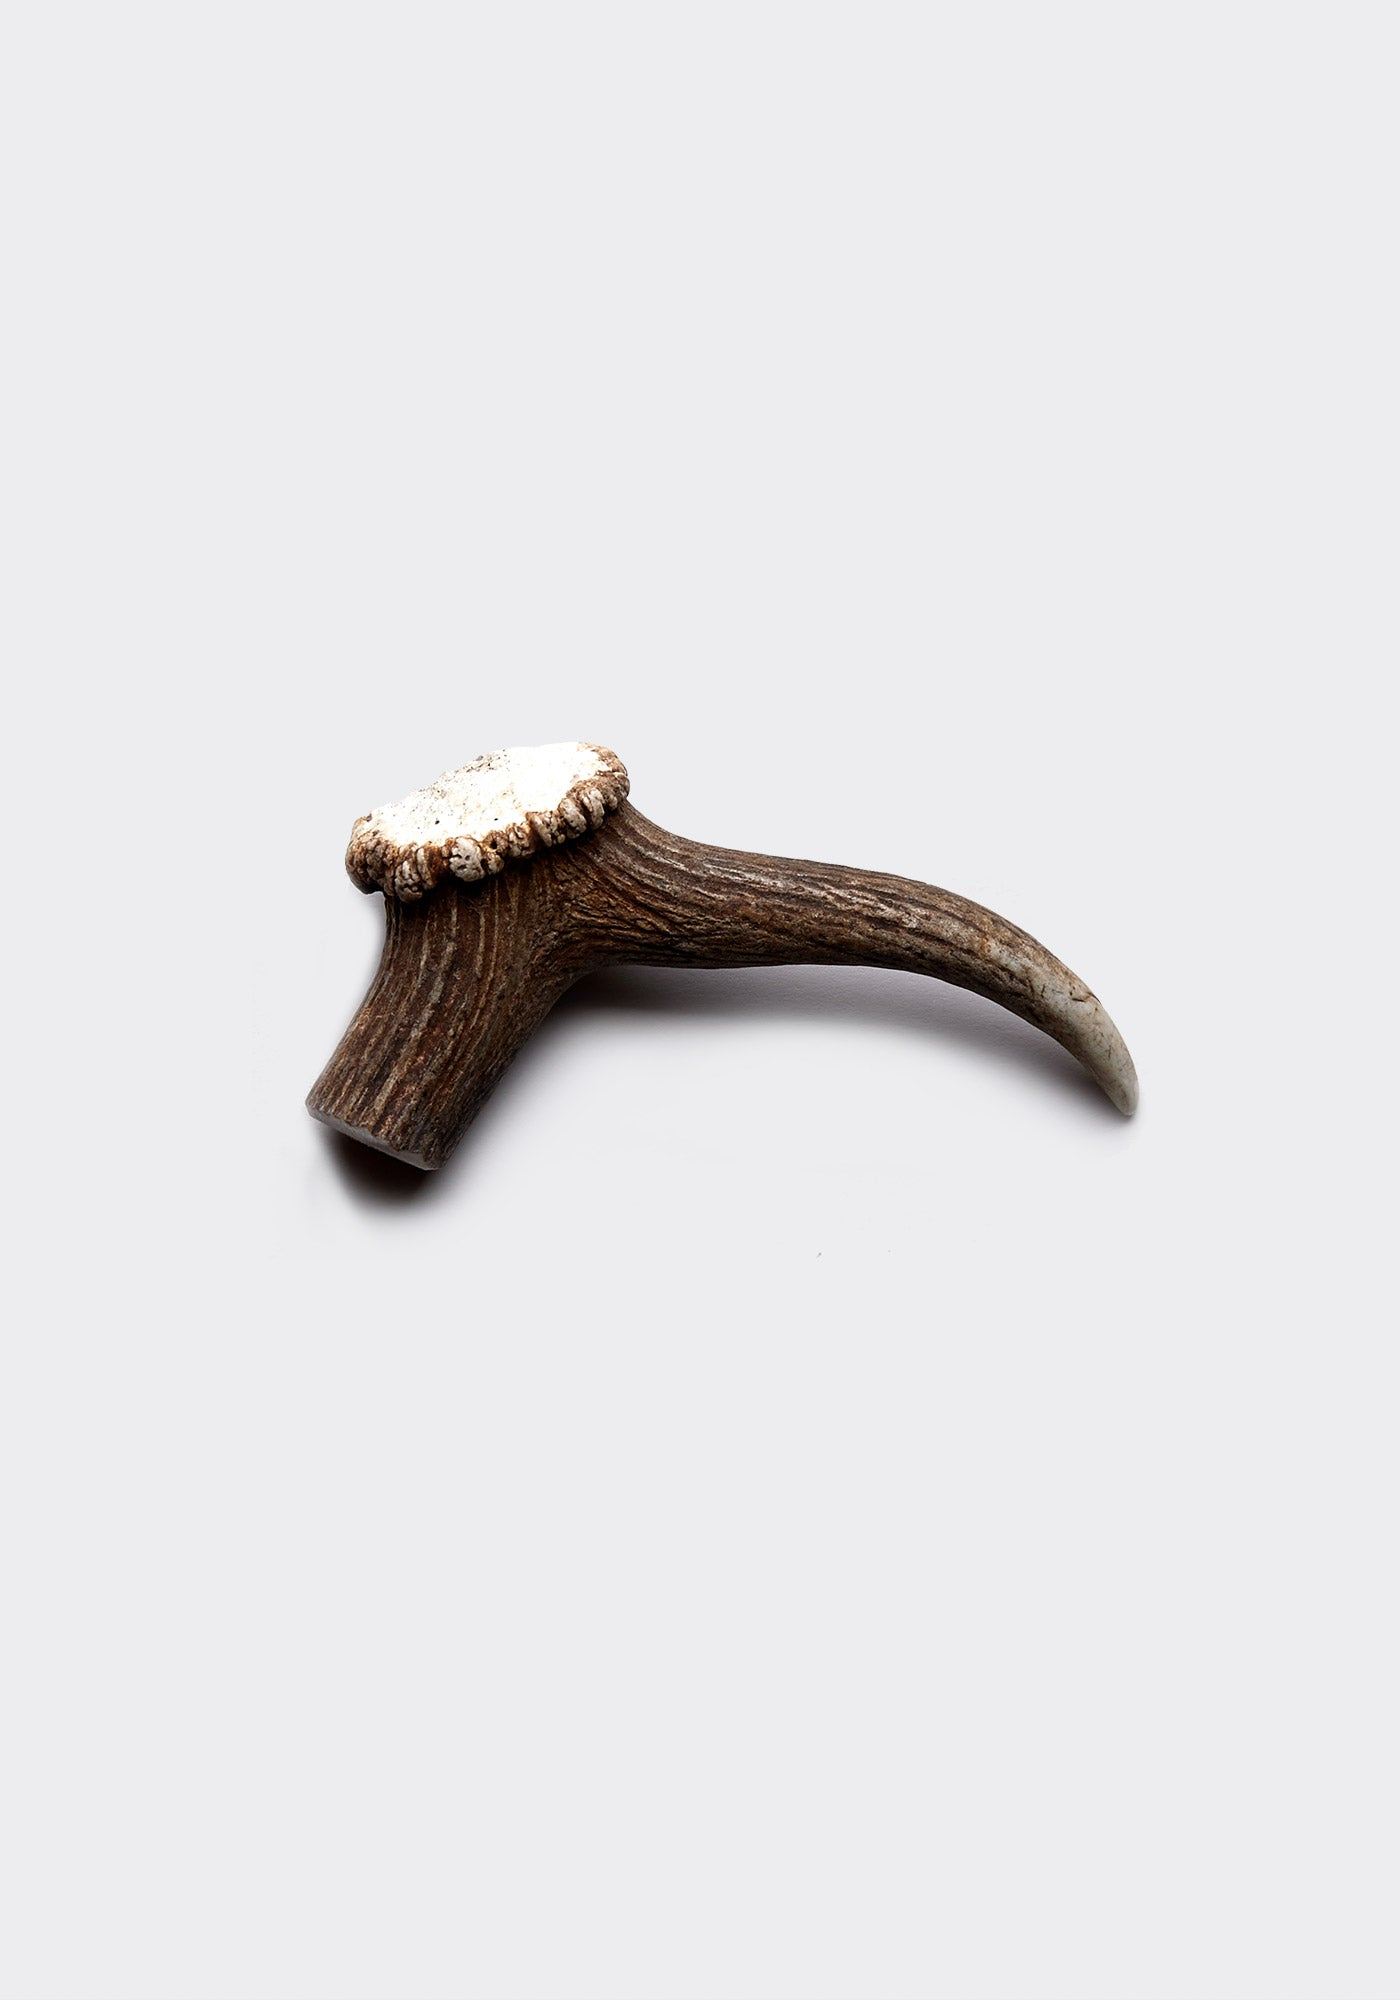 Deer antler large (single)